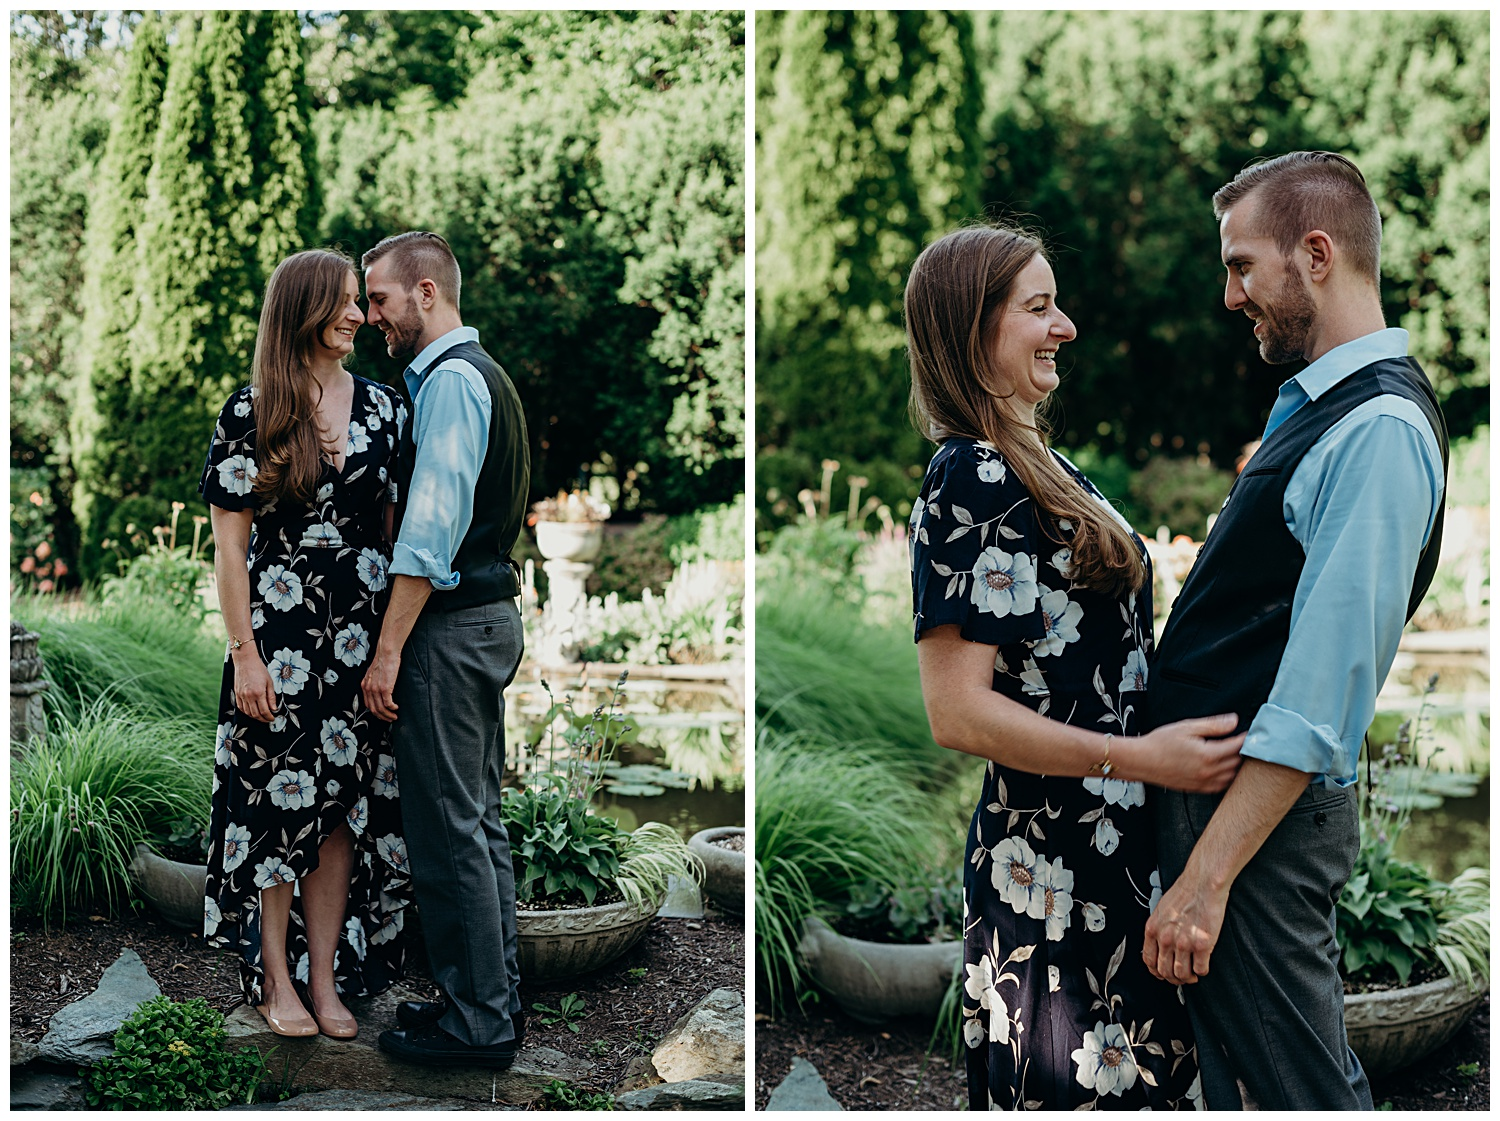 Megan-Graham-Photography-best-dc-wedding-engagement-photographer-surreybrooke-laura-eric-frederick4.jpg